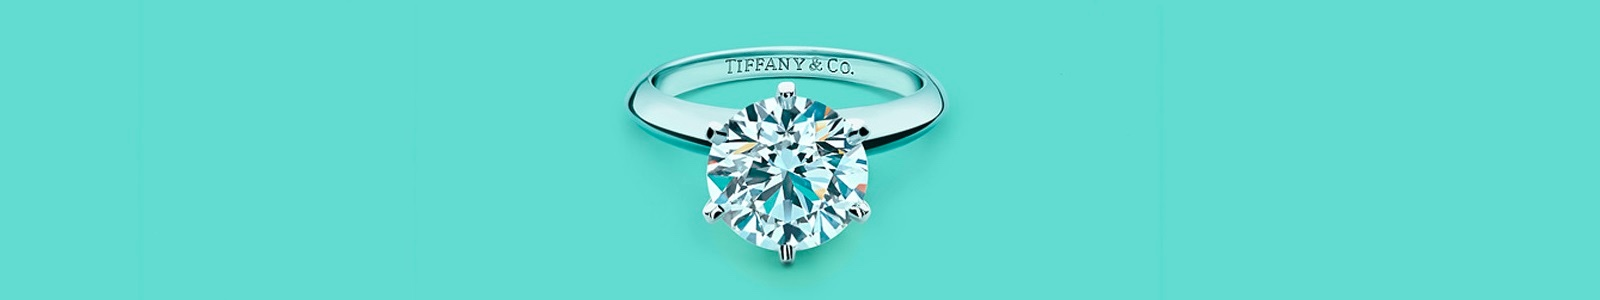 Tiffany & Co.'s banner